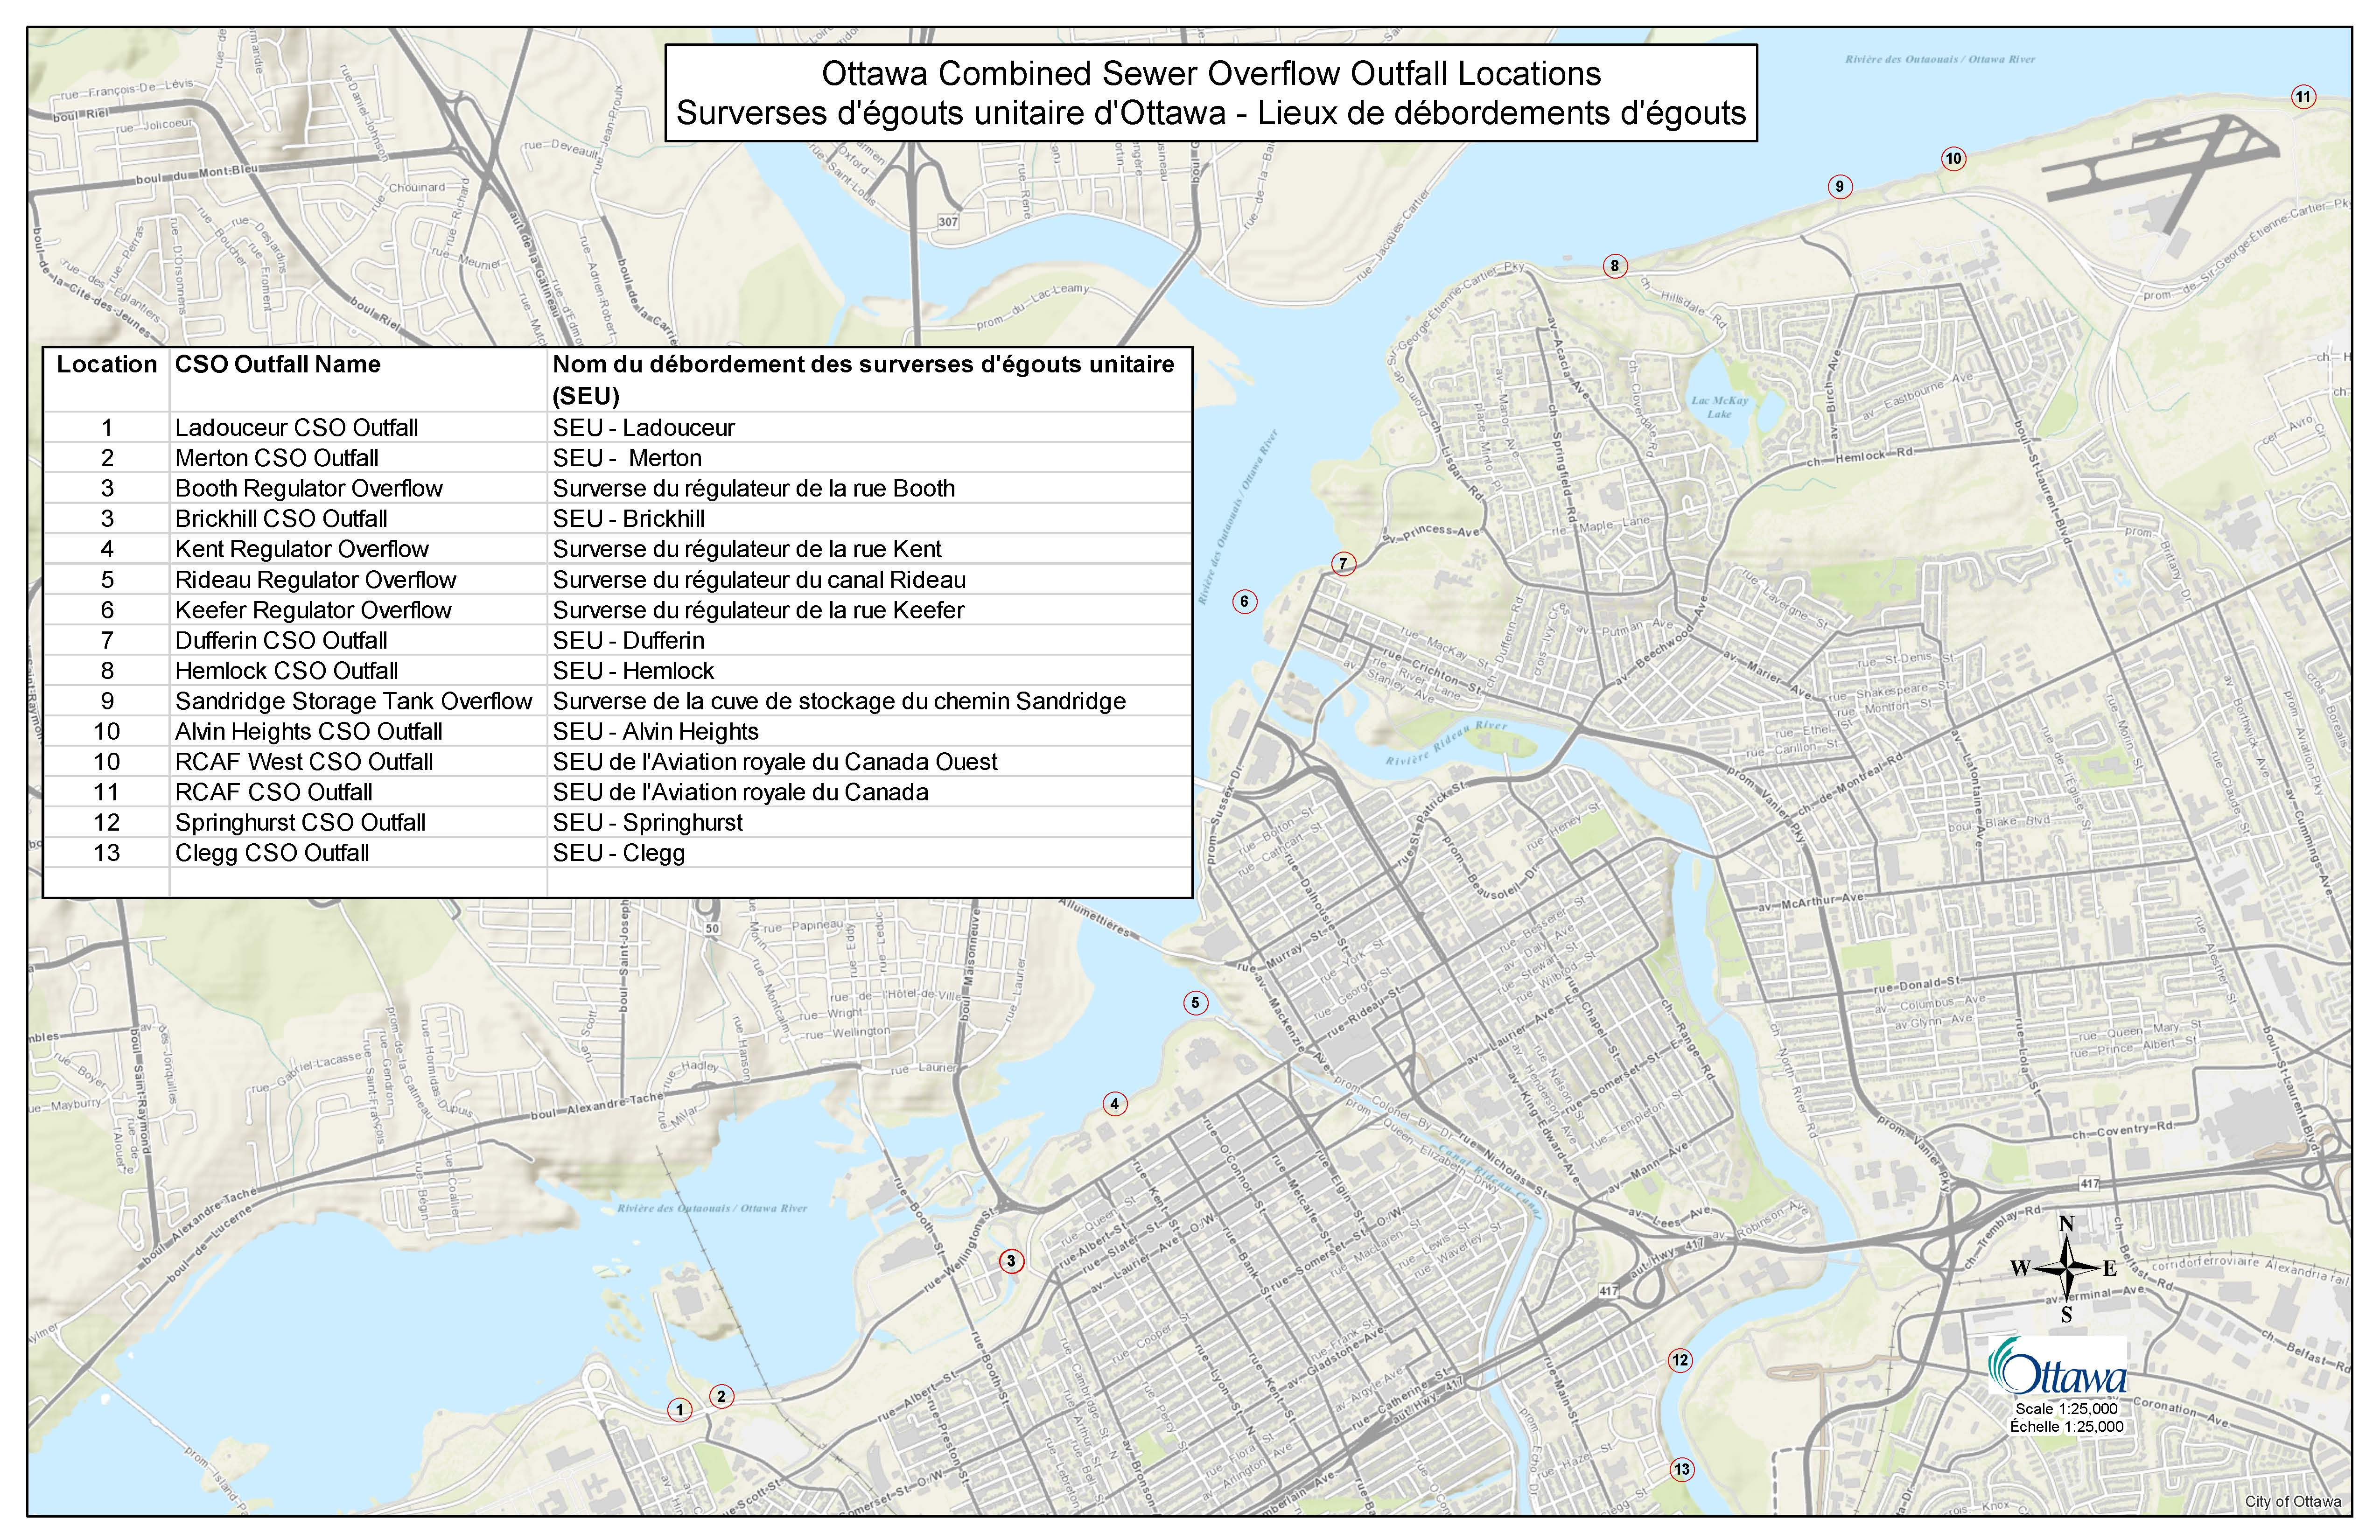 Map of Ottawa combined sewer overflow outfall locations